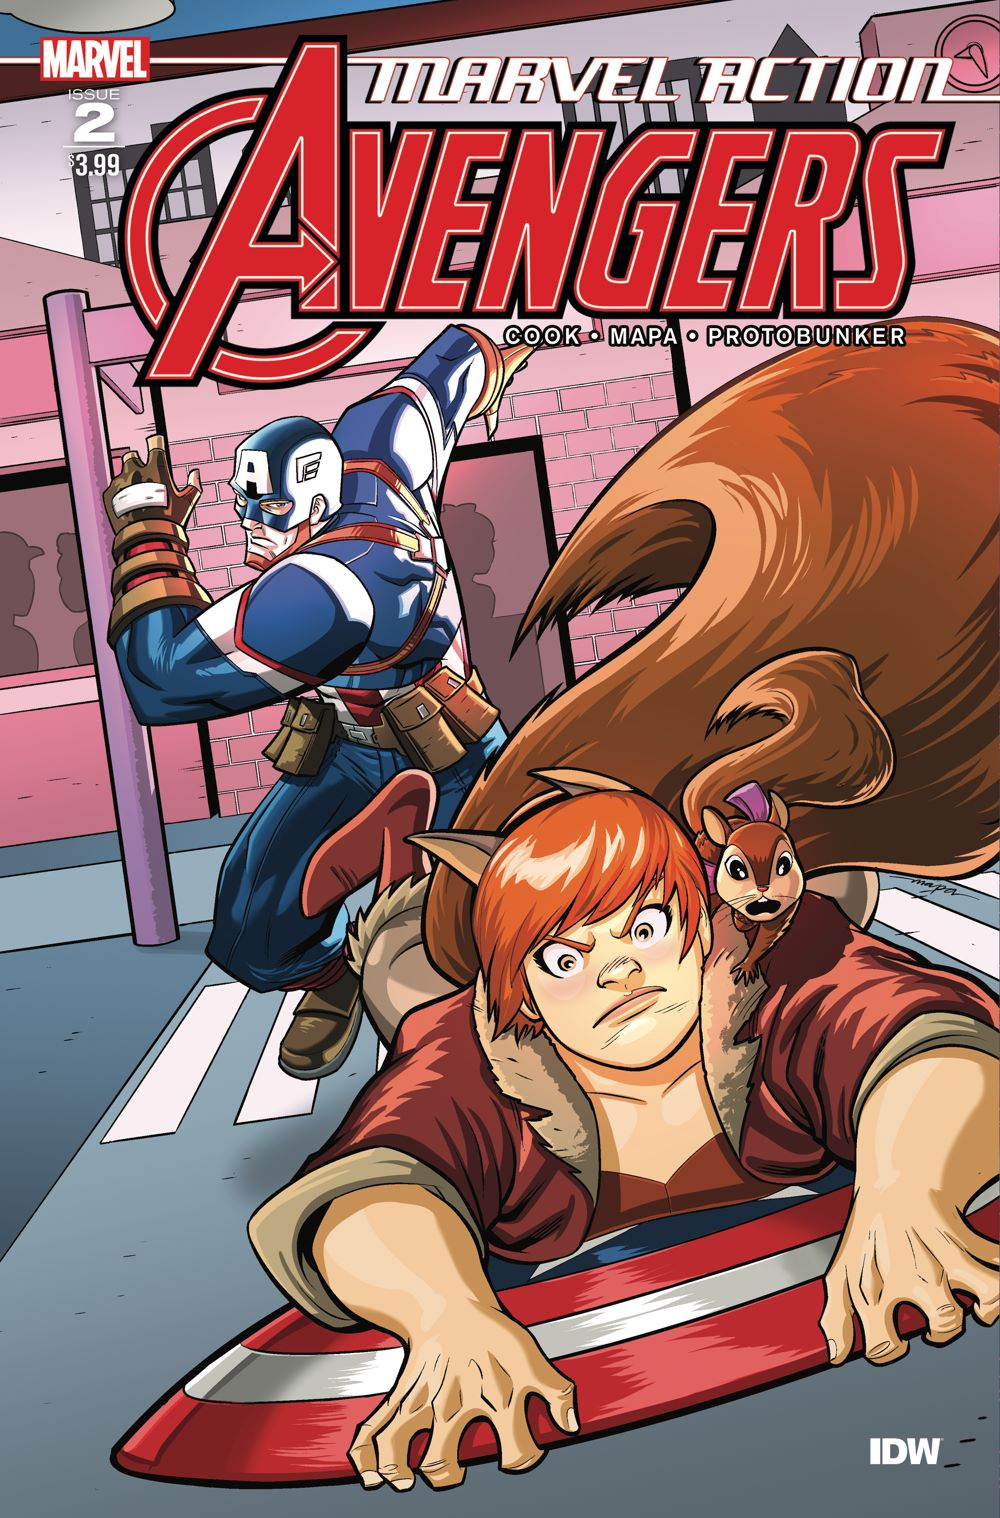 Marvel_Avengers02_coverA ComicList: IDW Publishing New Releases for 11/18/2020